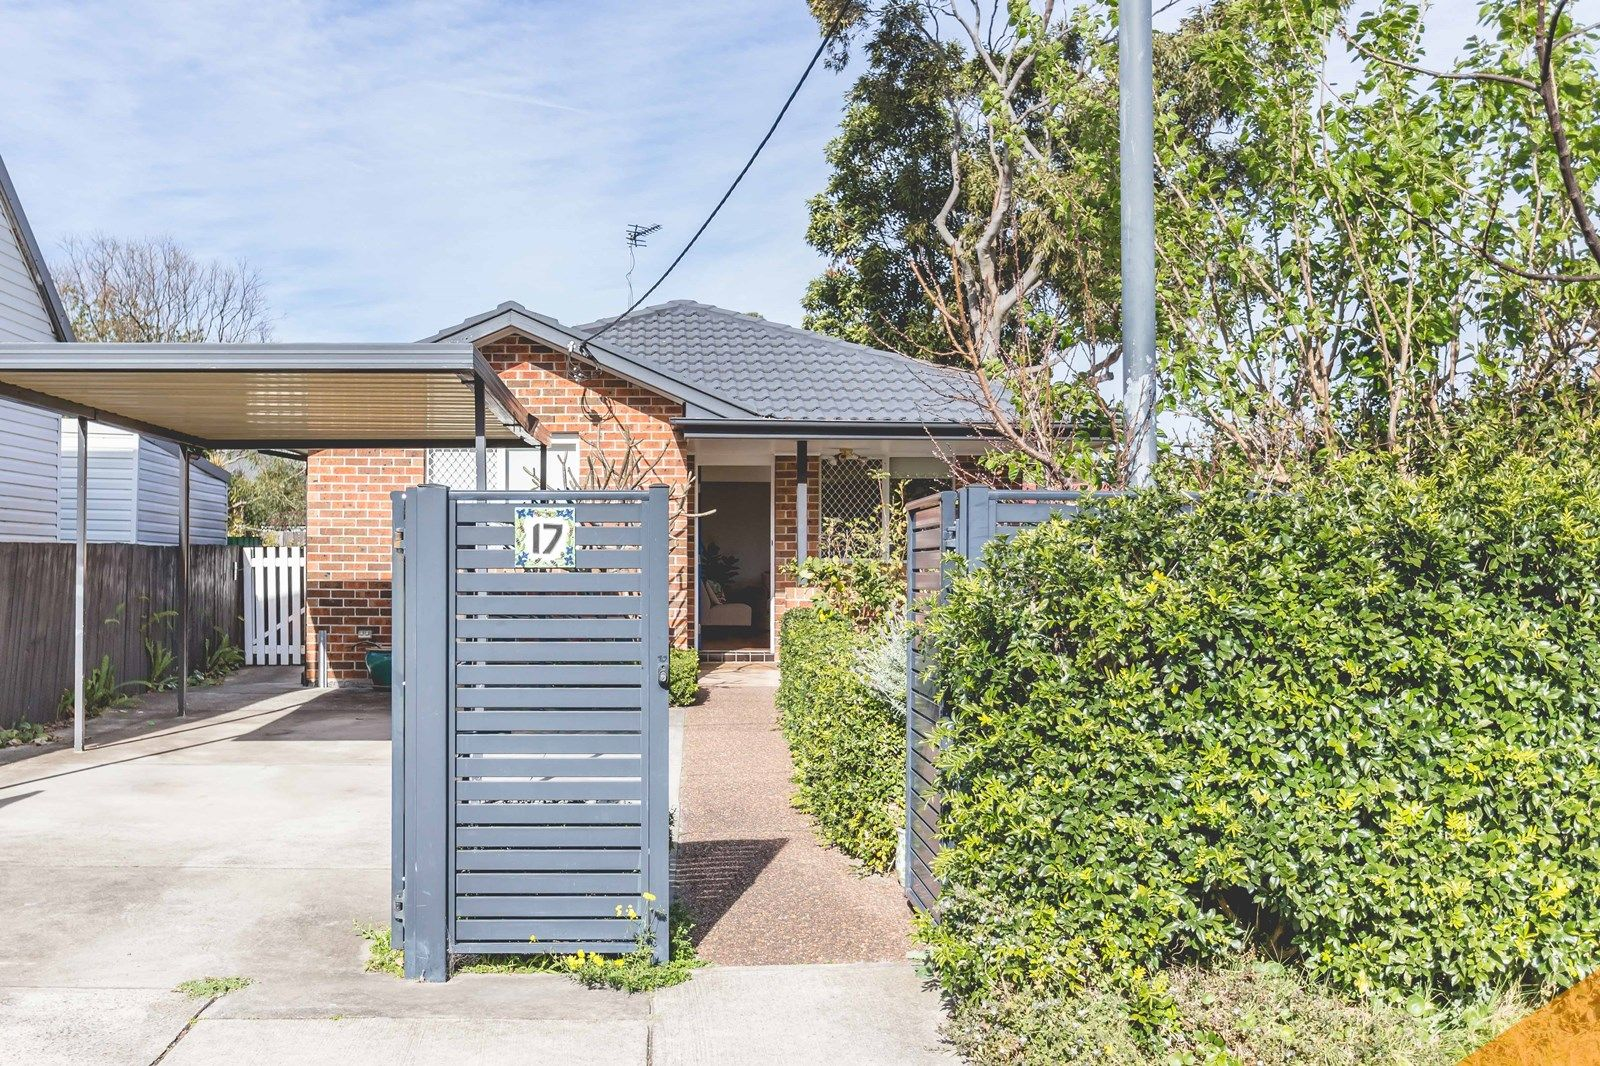 17 Farquhar St, The Junction NSW 2291, Image 2